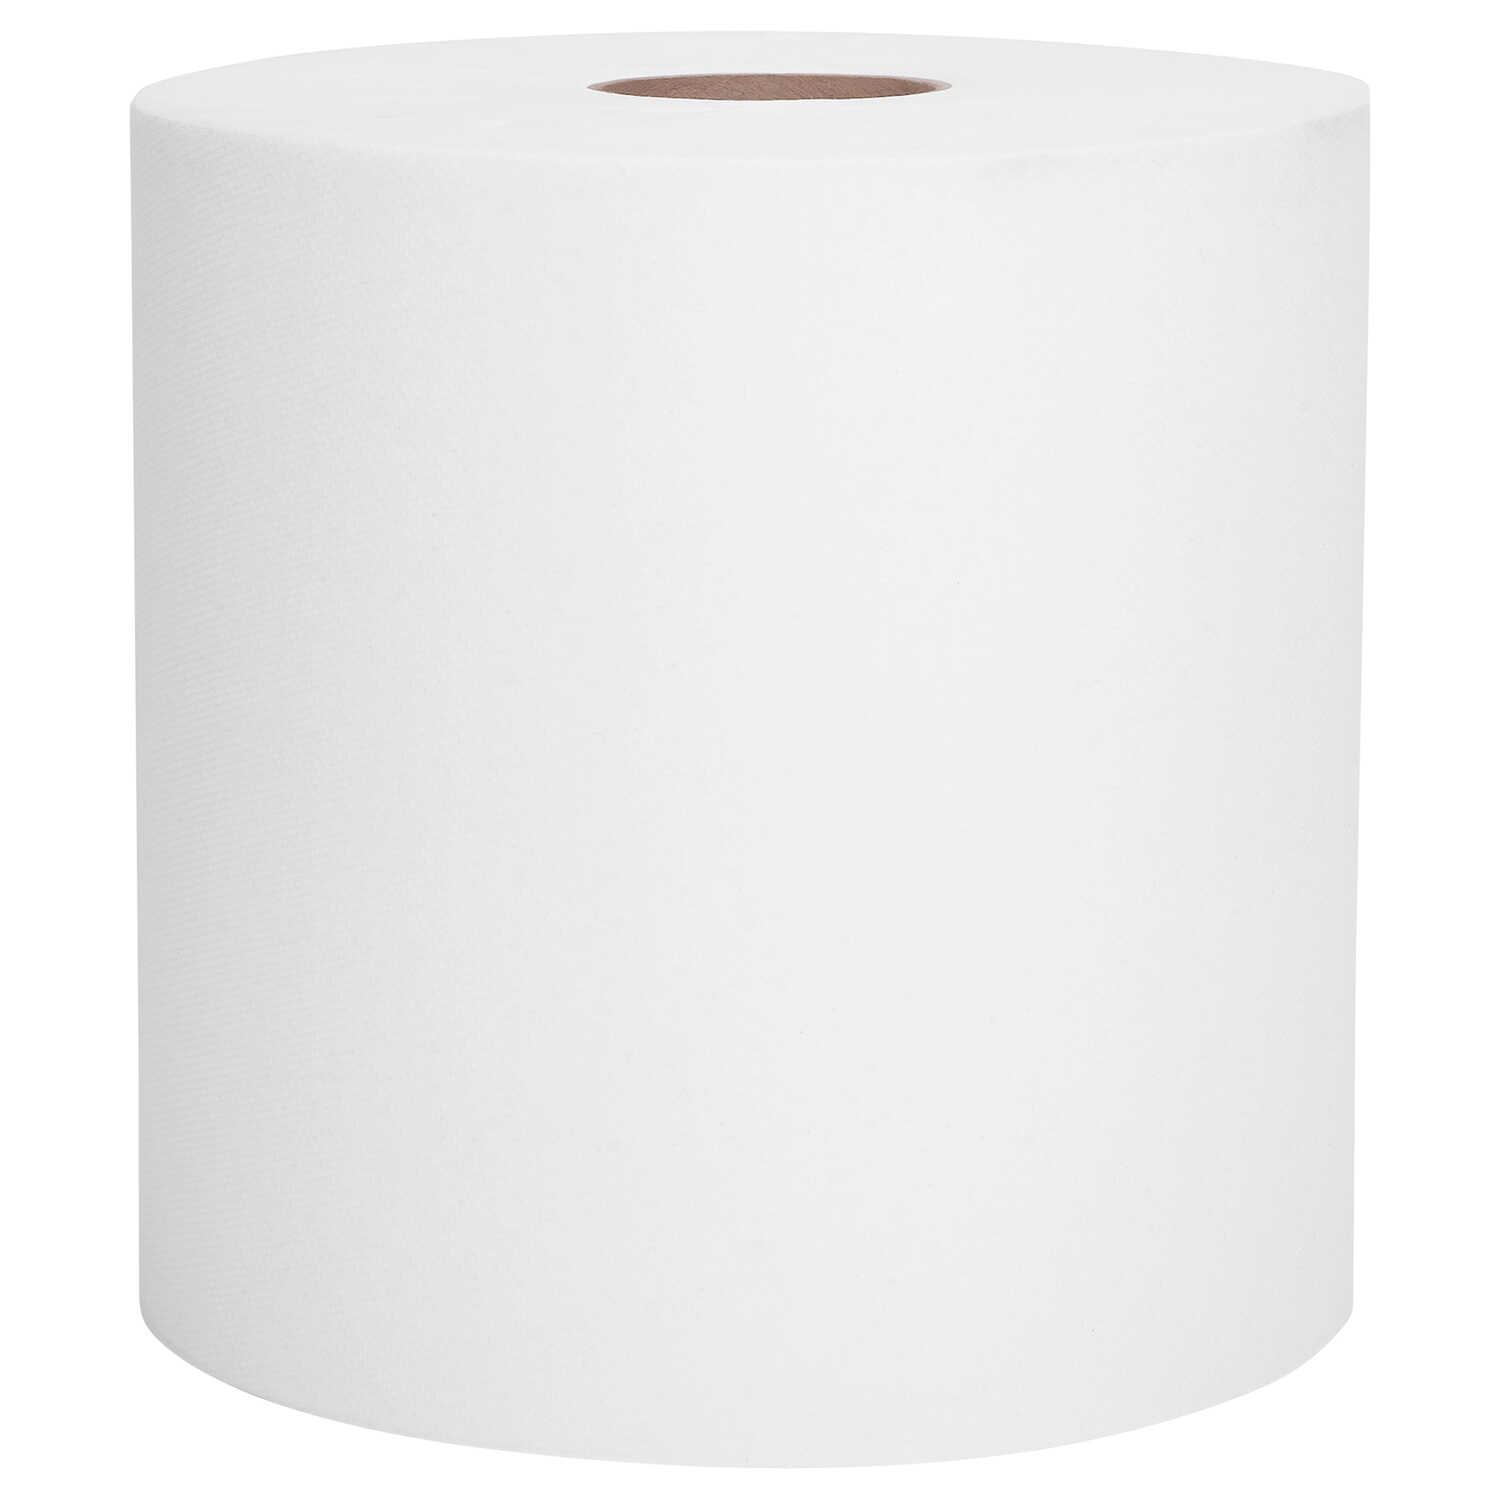 Scott  Paper Towels  1 ply 12 pk